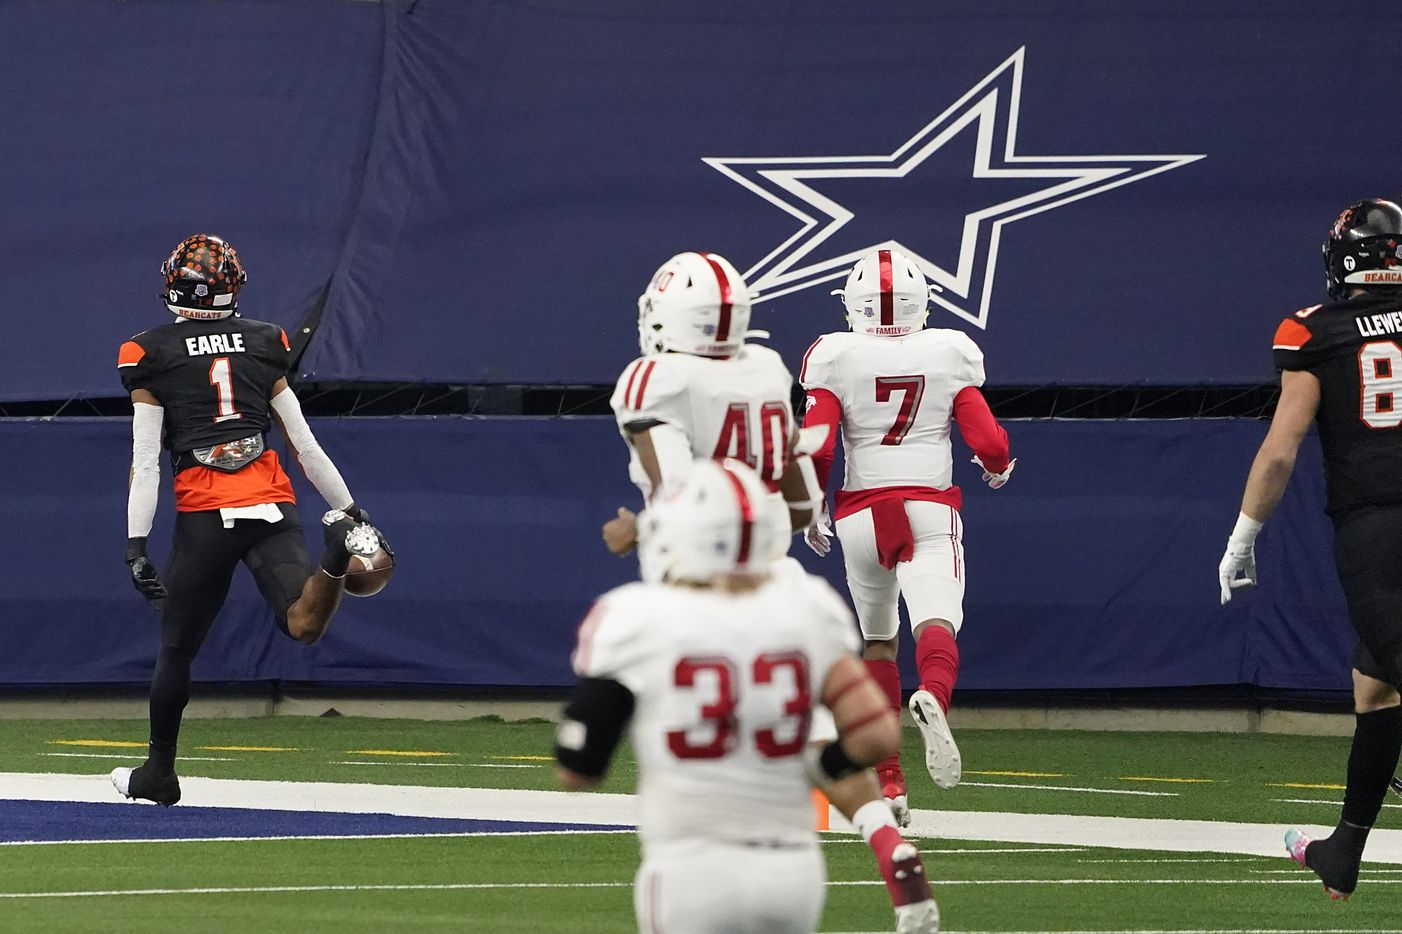 Aledo JoJo Earle (1) races through the Crosby defense on a 74-yard touchdown during the first half of the Class 5A Division II state football championship game at AT&T Stadium on Friday, Jan. 15, 2021, in Arlington. (Smiley N. Pool/The Dallas Morning News)